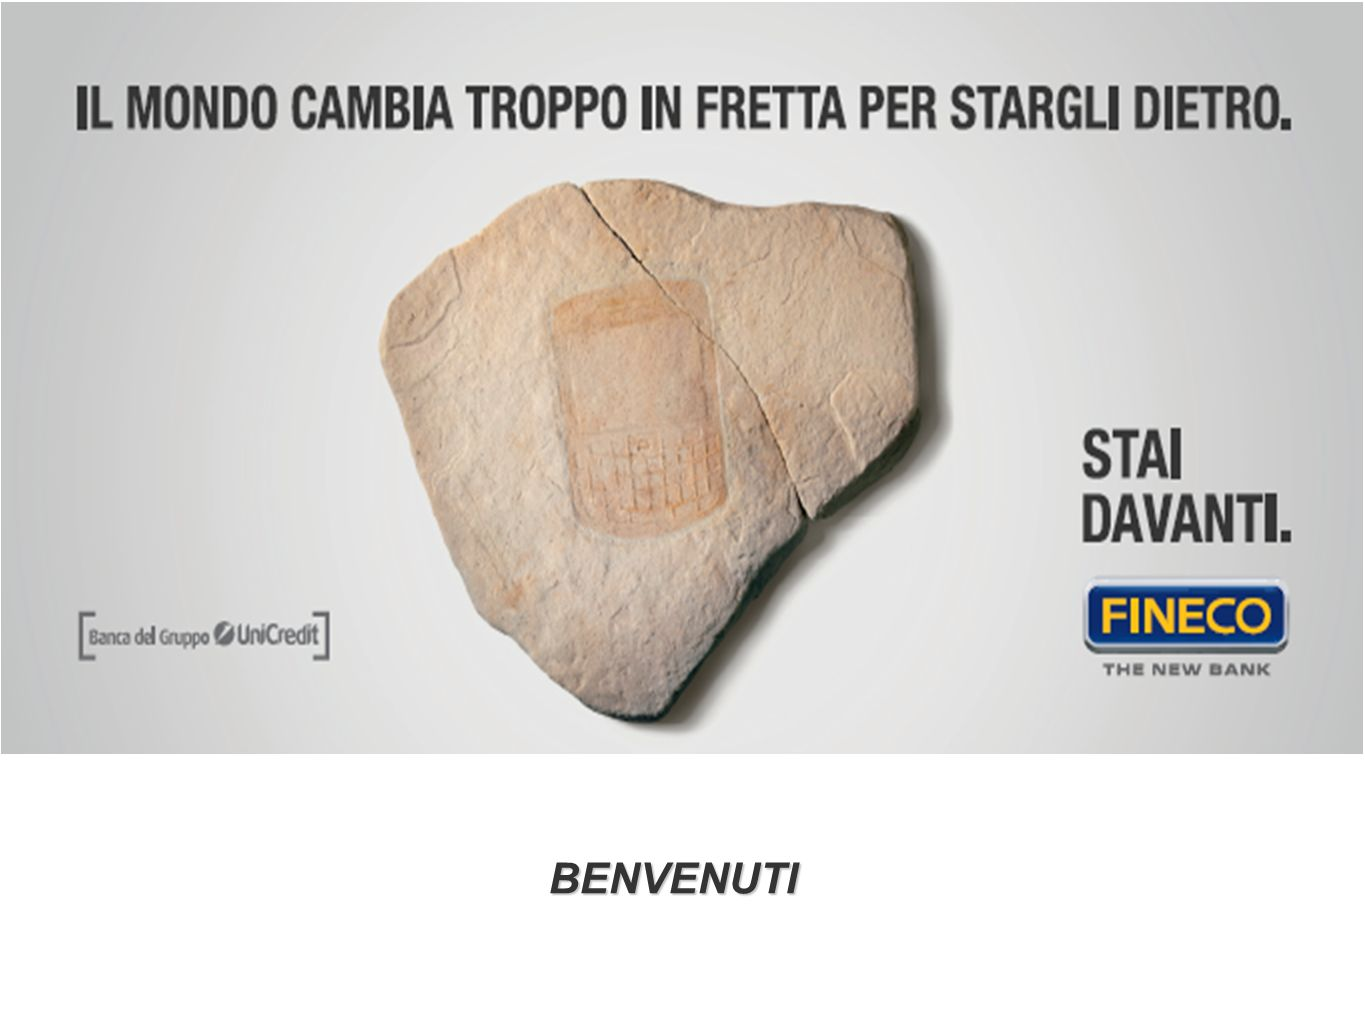 1 © Copyright 2007 FinecoBank - Versione * – Confidential – Do not distribute Presentazione BENVENUTI